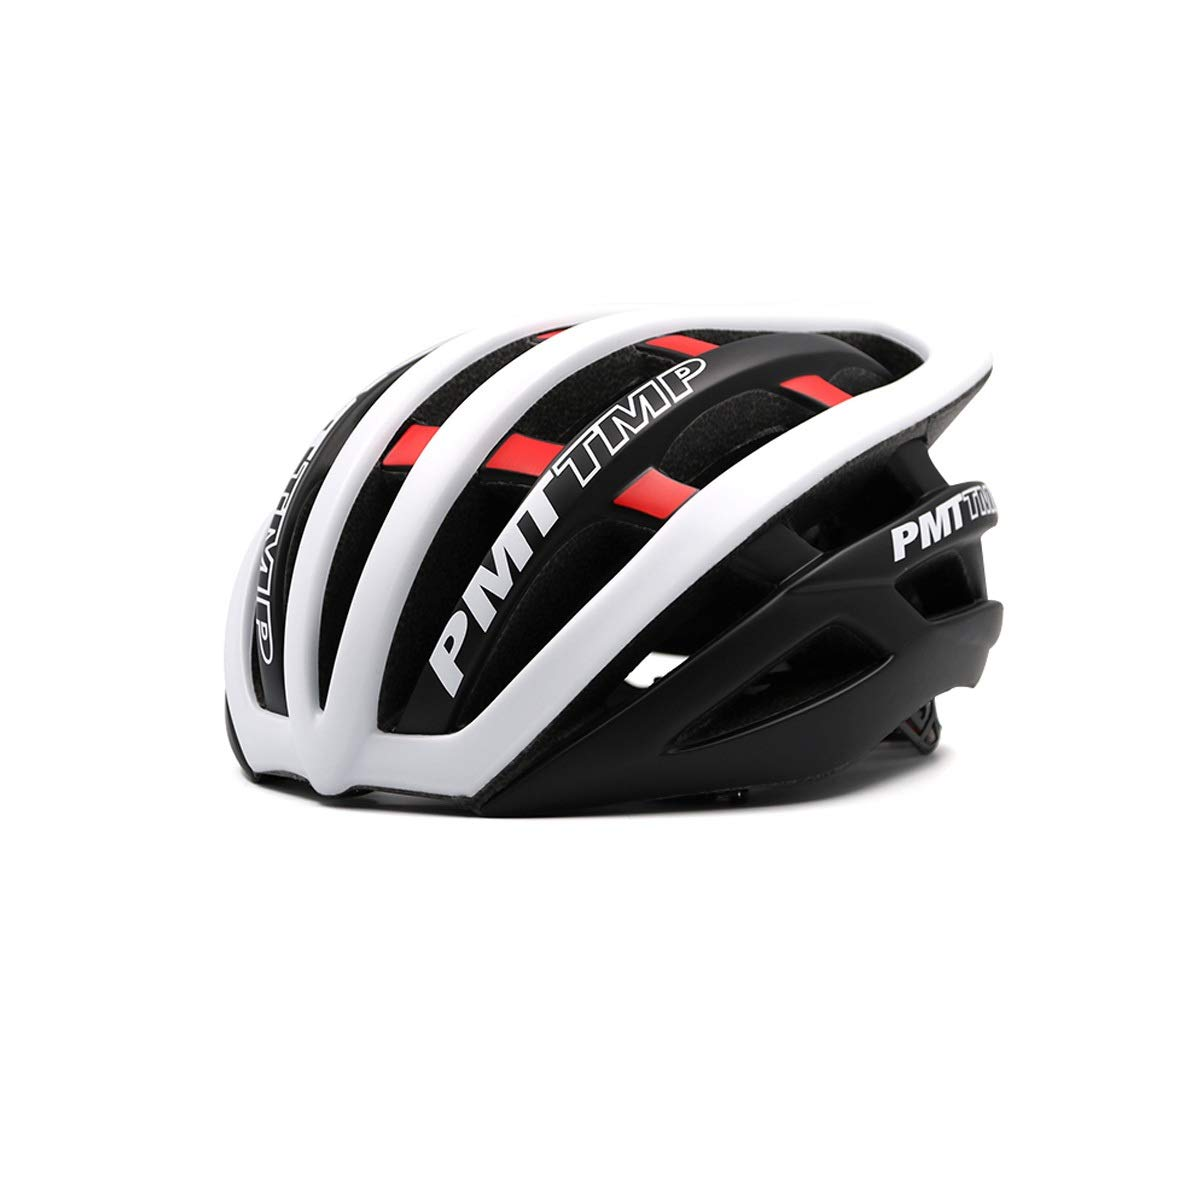 Muziwenju Bicycle Safety Helmet, Traverse H1 2-in-1 Convertible Ski & Snowboard/Bike & Skate Helmet with 10 Vents Latest Style, Practical (Color : White, Size : S(53-55cm))